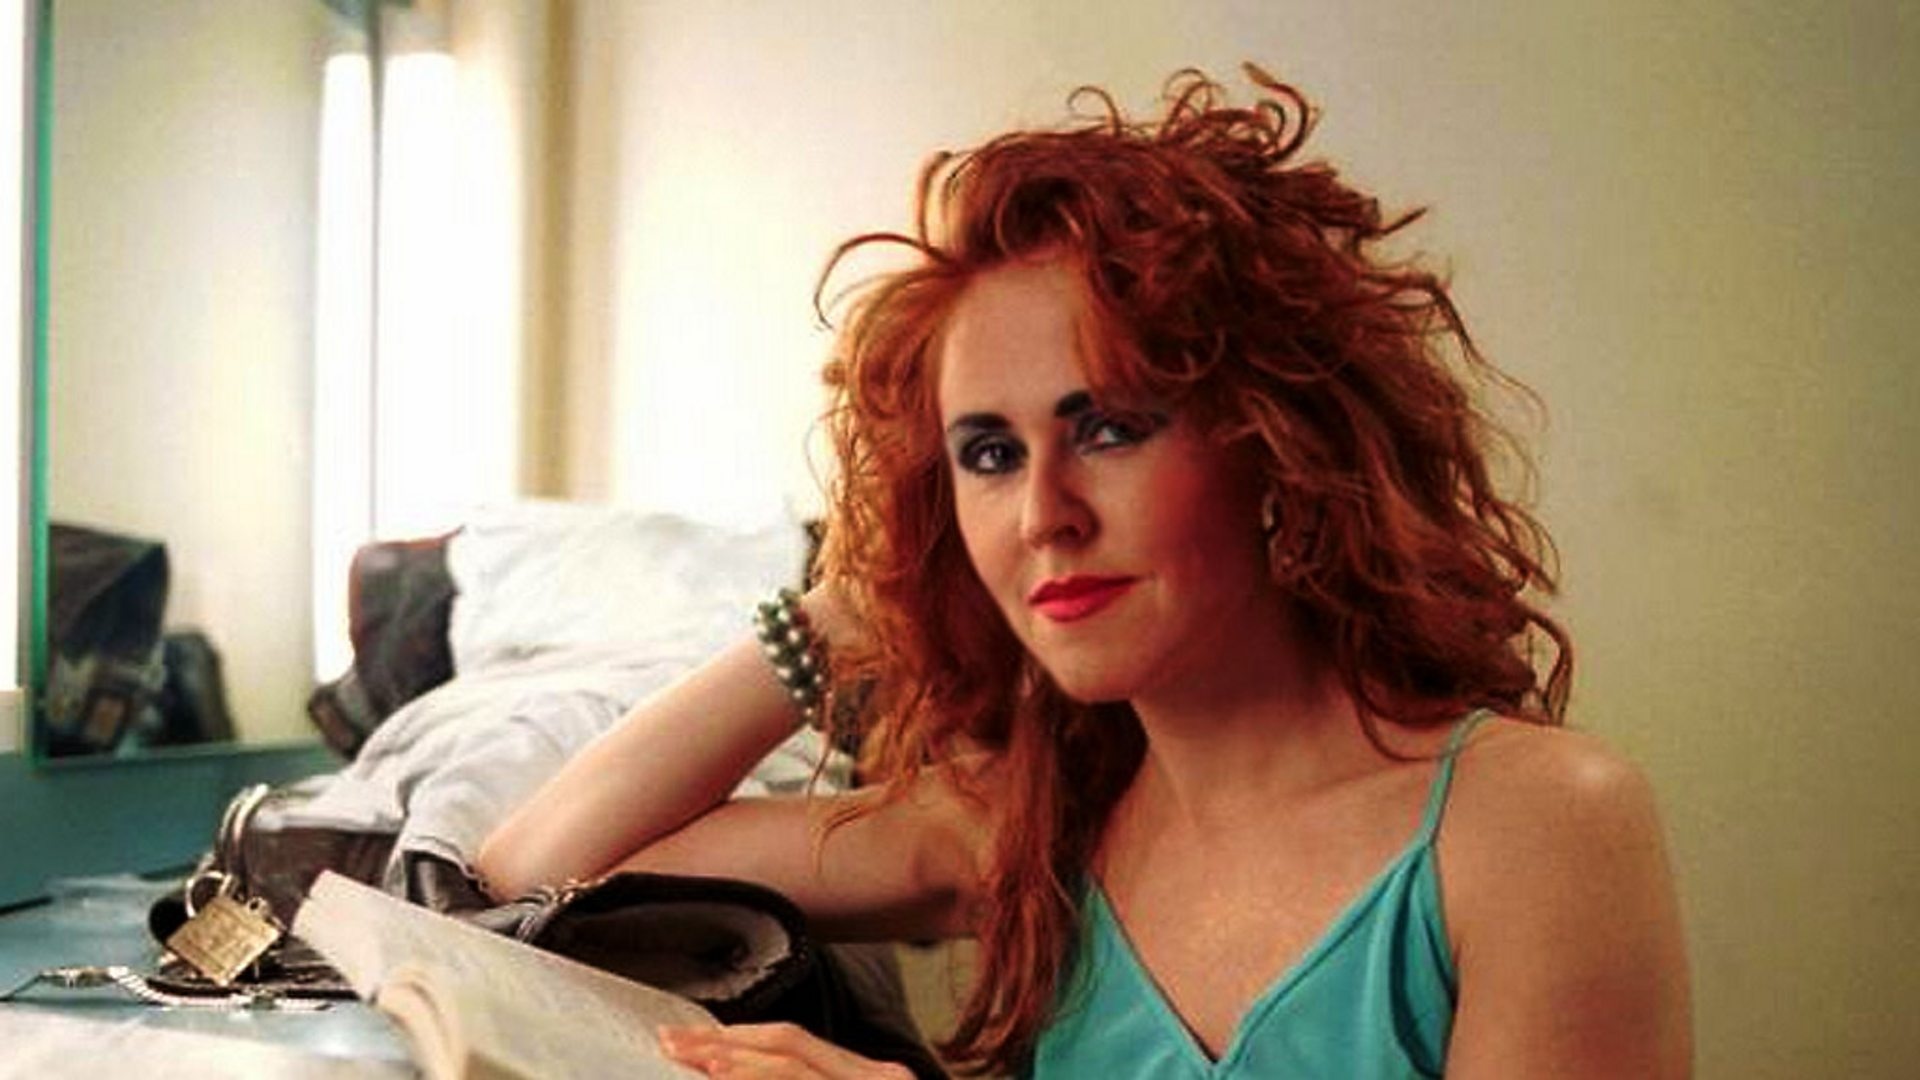 Feet Carol Decker nude (78 foto and video), Ass, Hot, Instagram, braless 2006